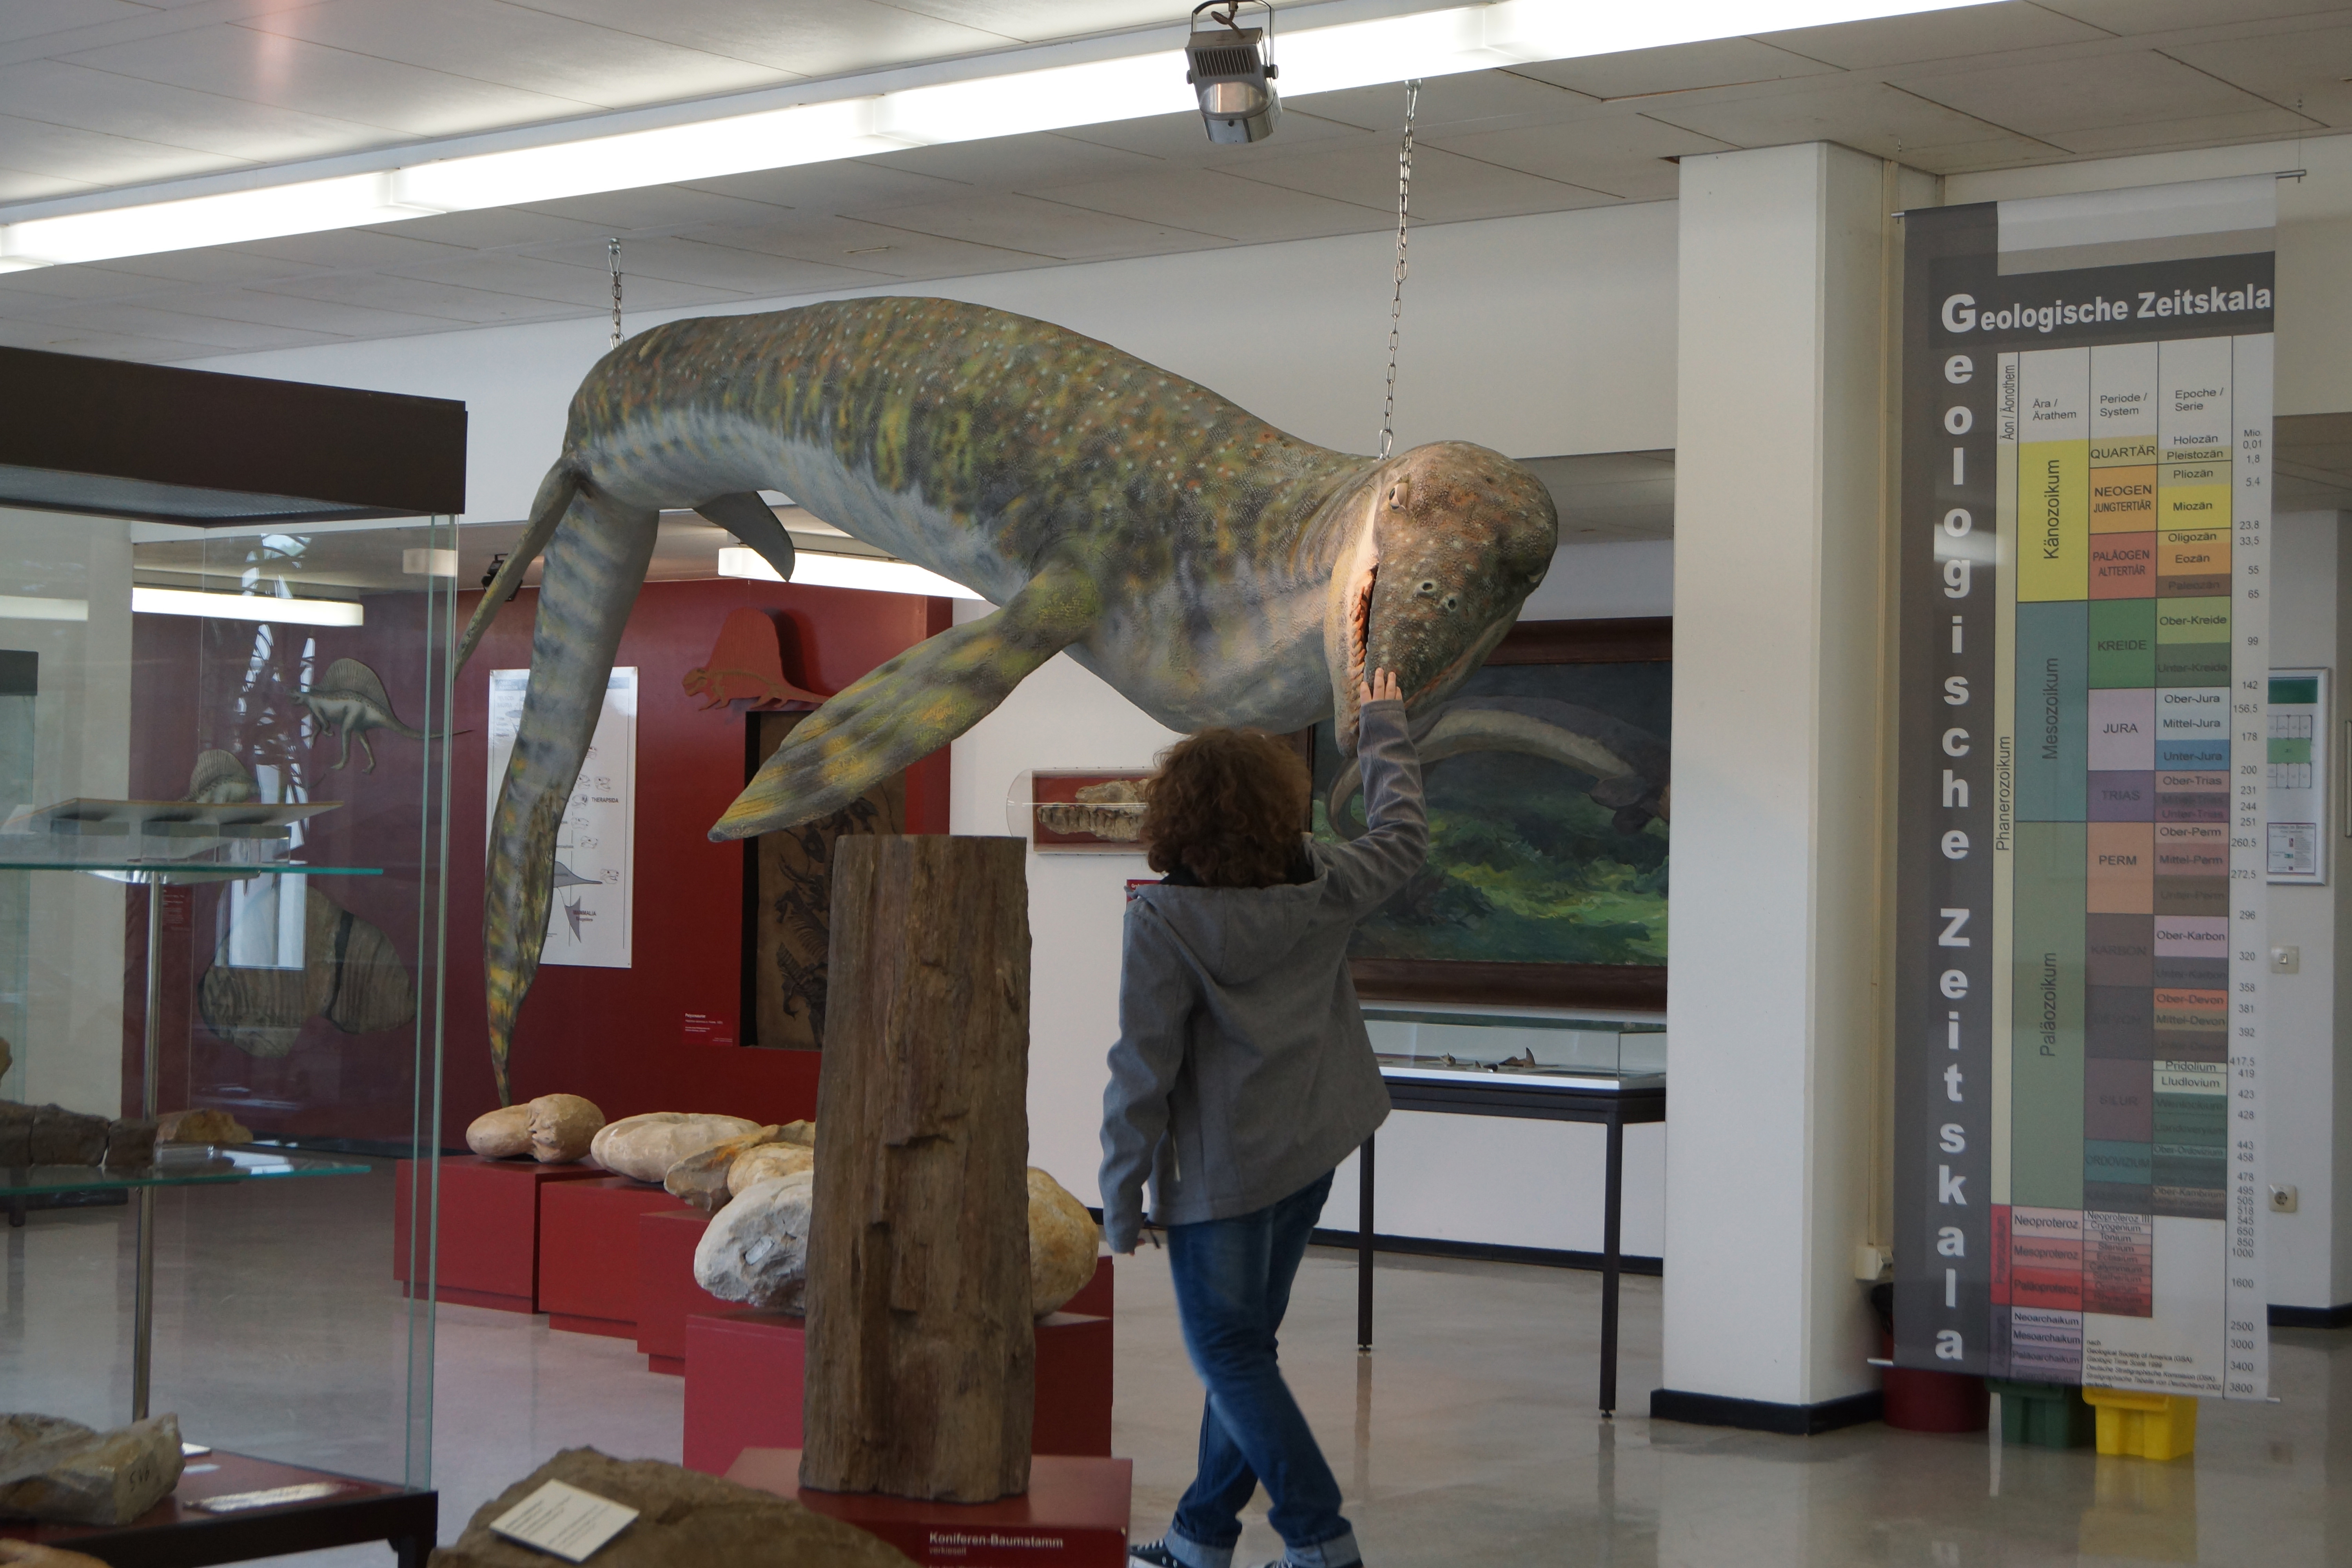 Mosasaurier_Museum_GZG.jpg